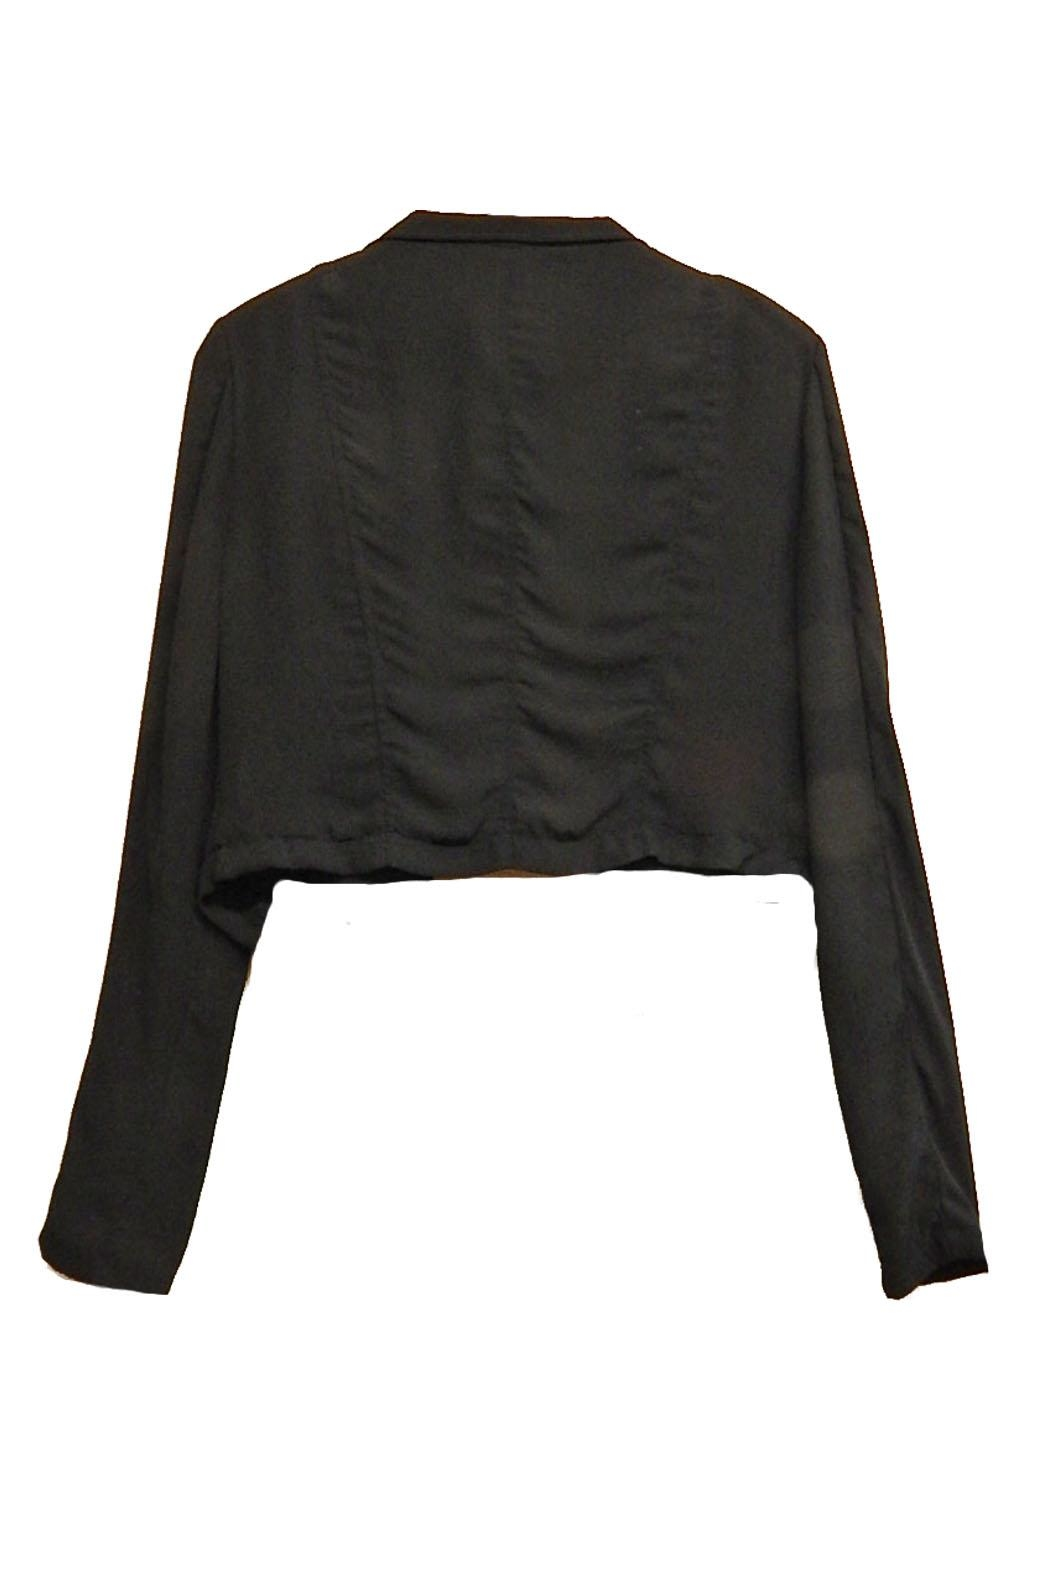 jacket black mock gallery clothing in normal stud product lyst acne studios